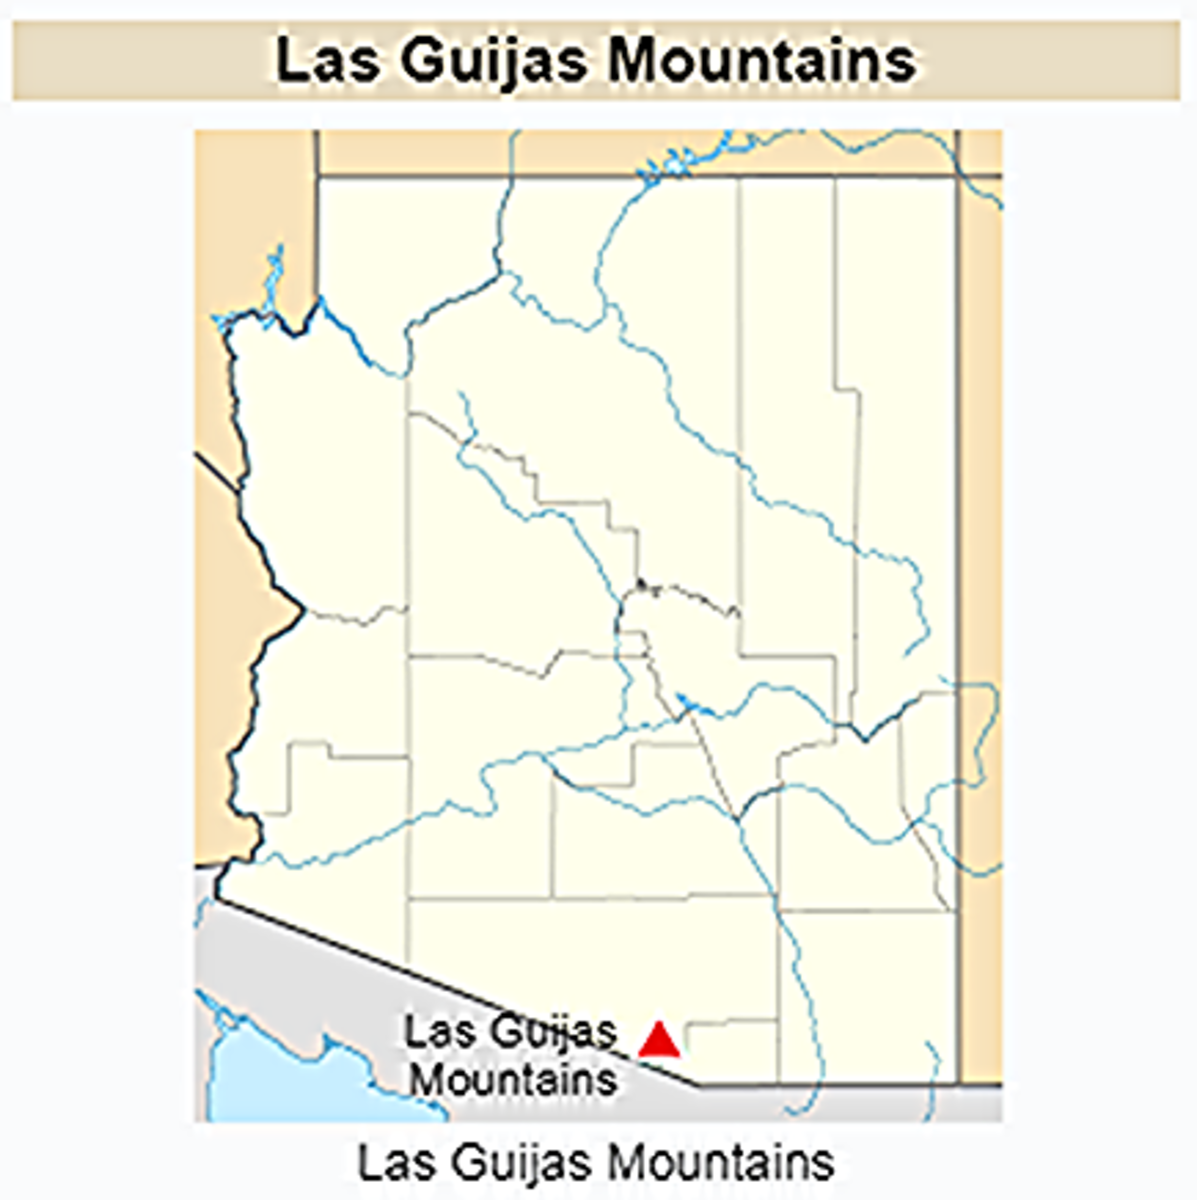 The range spans 12 kilometres (7.5 mi) long by 4 km (2.5 mi). Surrounding ranges includes the Cerro Colorado Mountains to the northeast, Tumacacori Mountains of Santa Cruz County to the east,  San Luis Mountains to the south and the Baboquivari west.